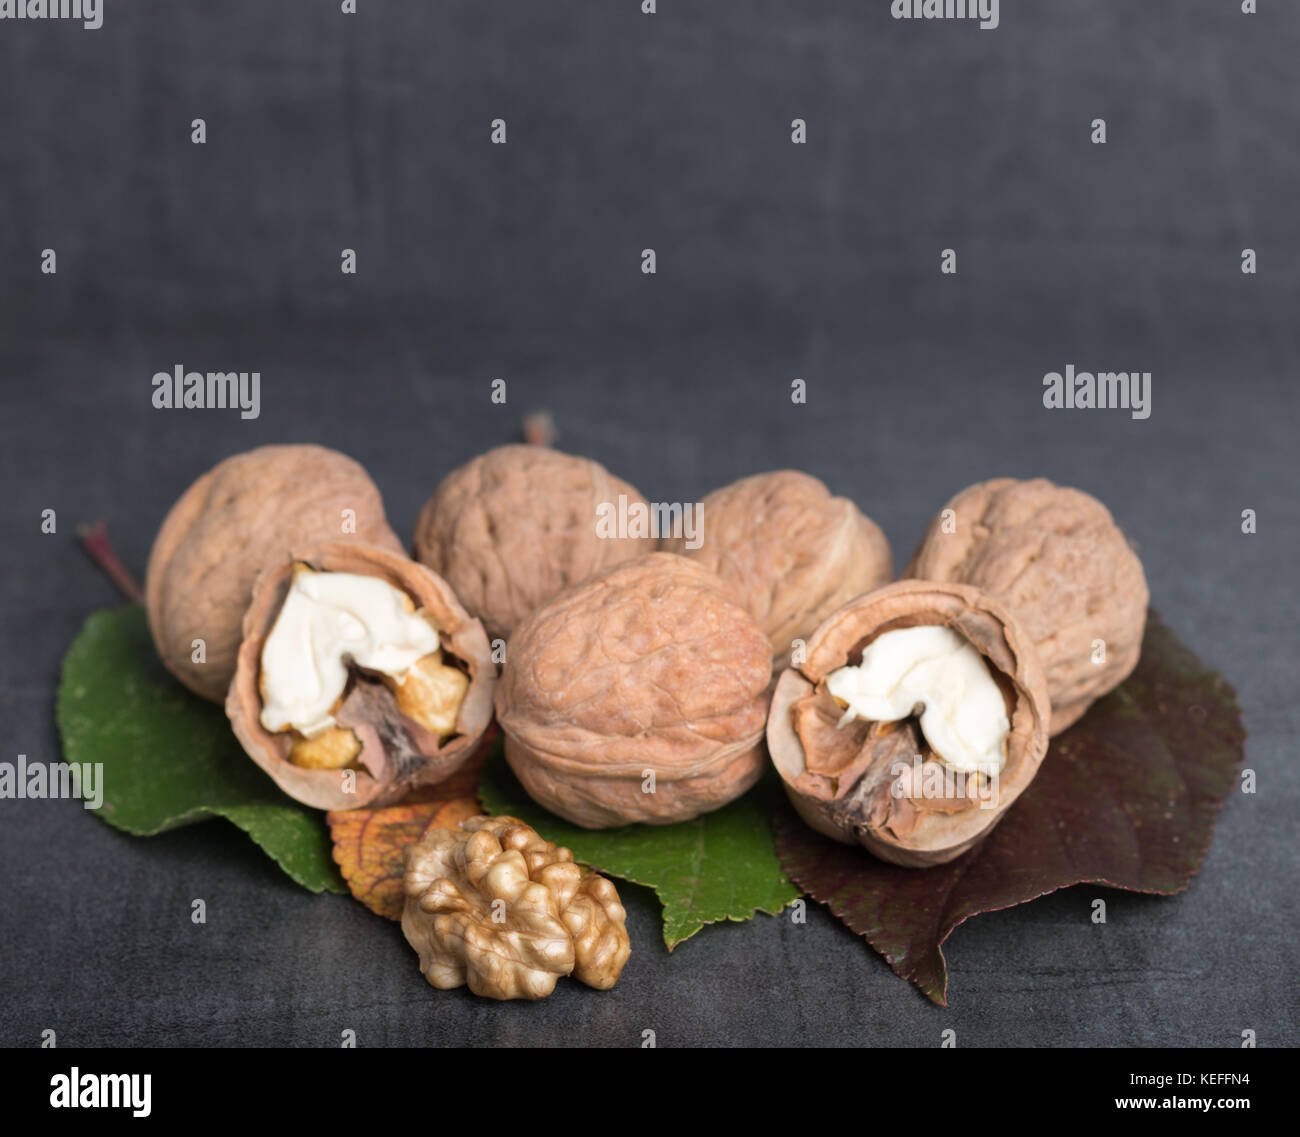 bio walnuts on a stone table - Stock Image